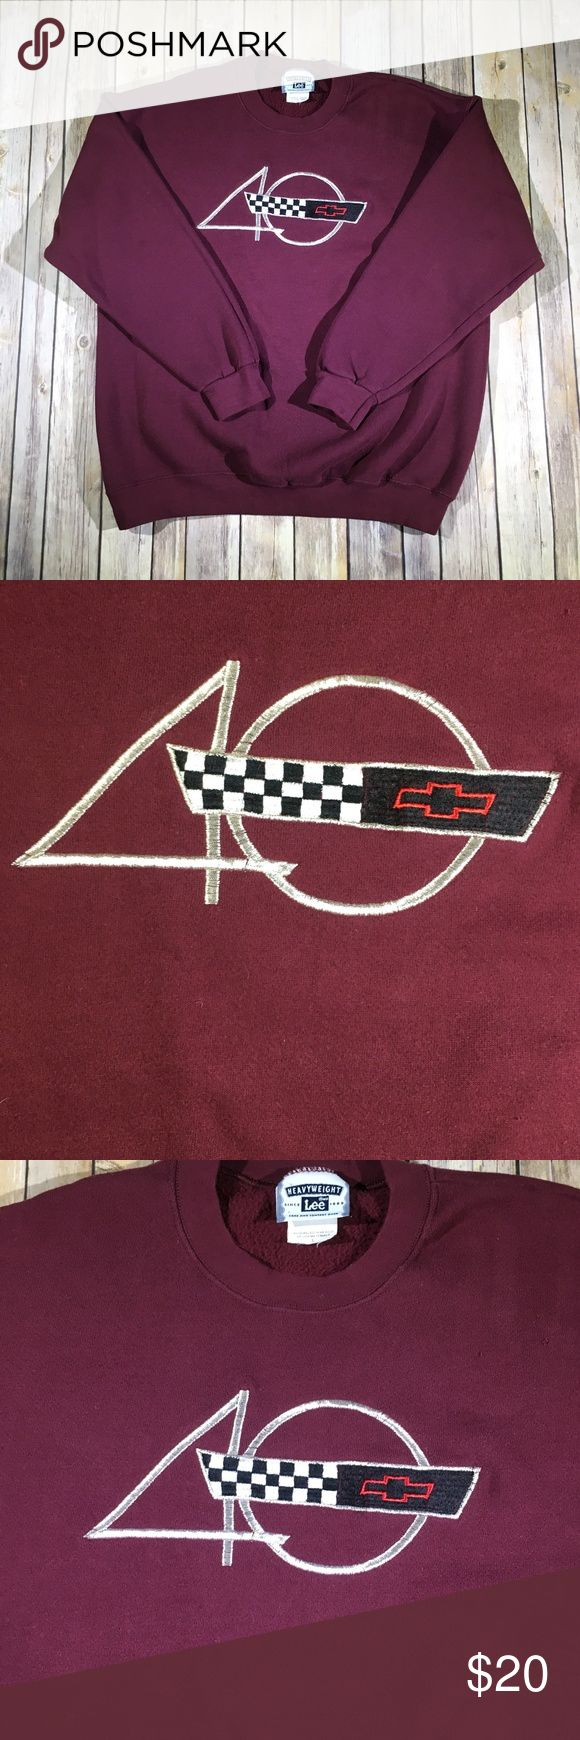 Vintage Ford 40 Year Anniversary Sweater - Mens L Condition - 8/10 with little to no signs of previous wear. No cuts, holes, rips or stains  Brand - Lee Heavyweight   Size - Mens Large   Color - Burgundy   Origin - Assembled in USA Lee Sweaters Crewneck